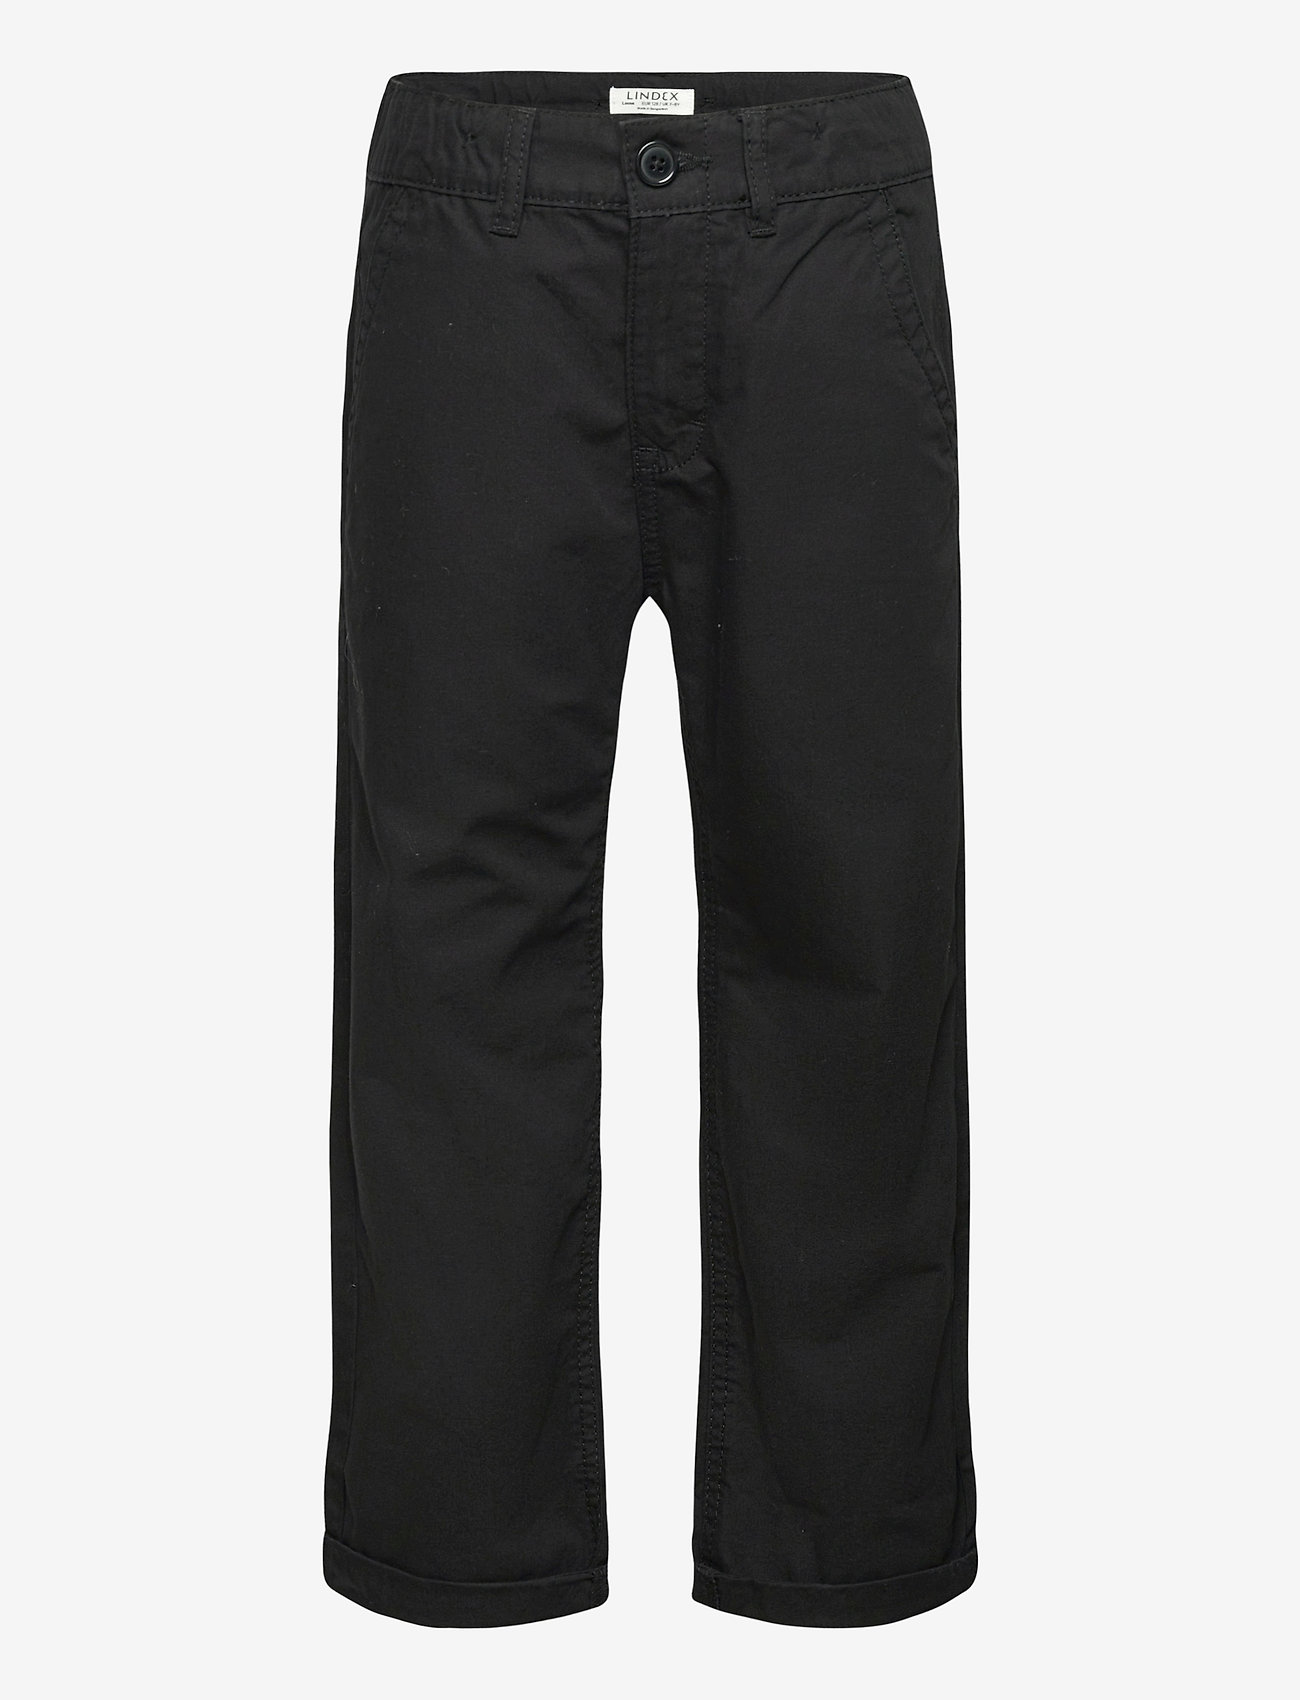 Lindex - Trousers chinos skatefit - trousers - black - 0